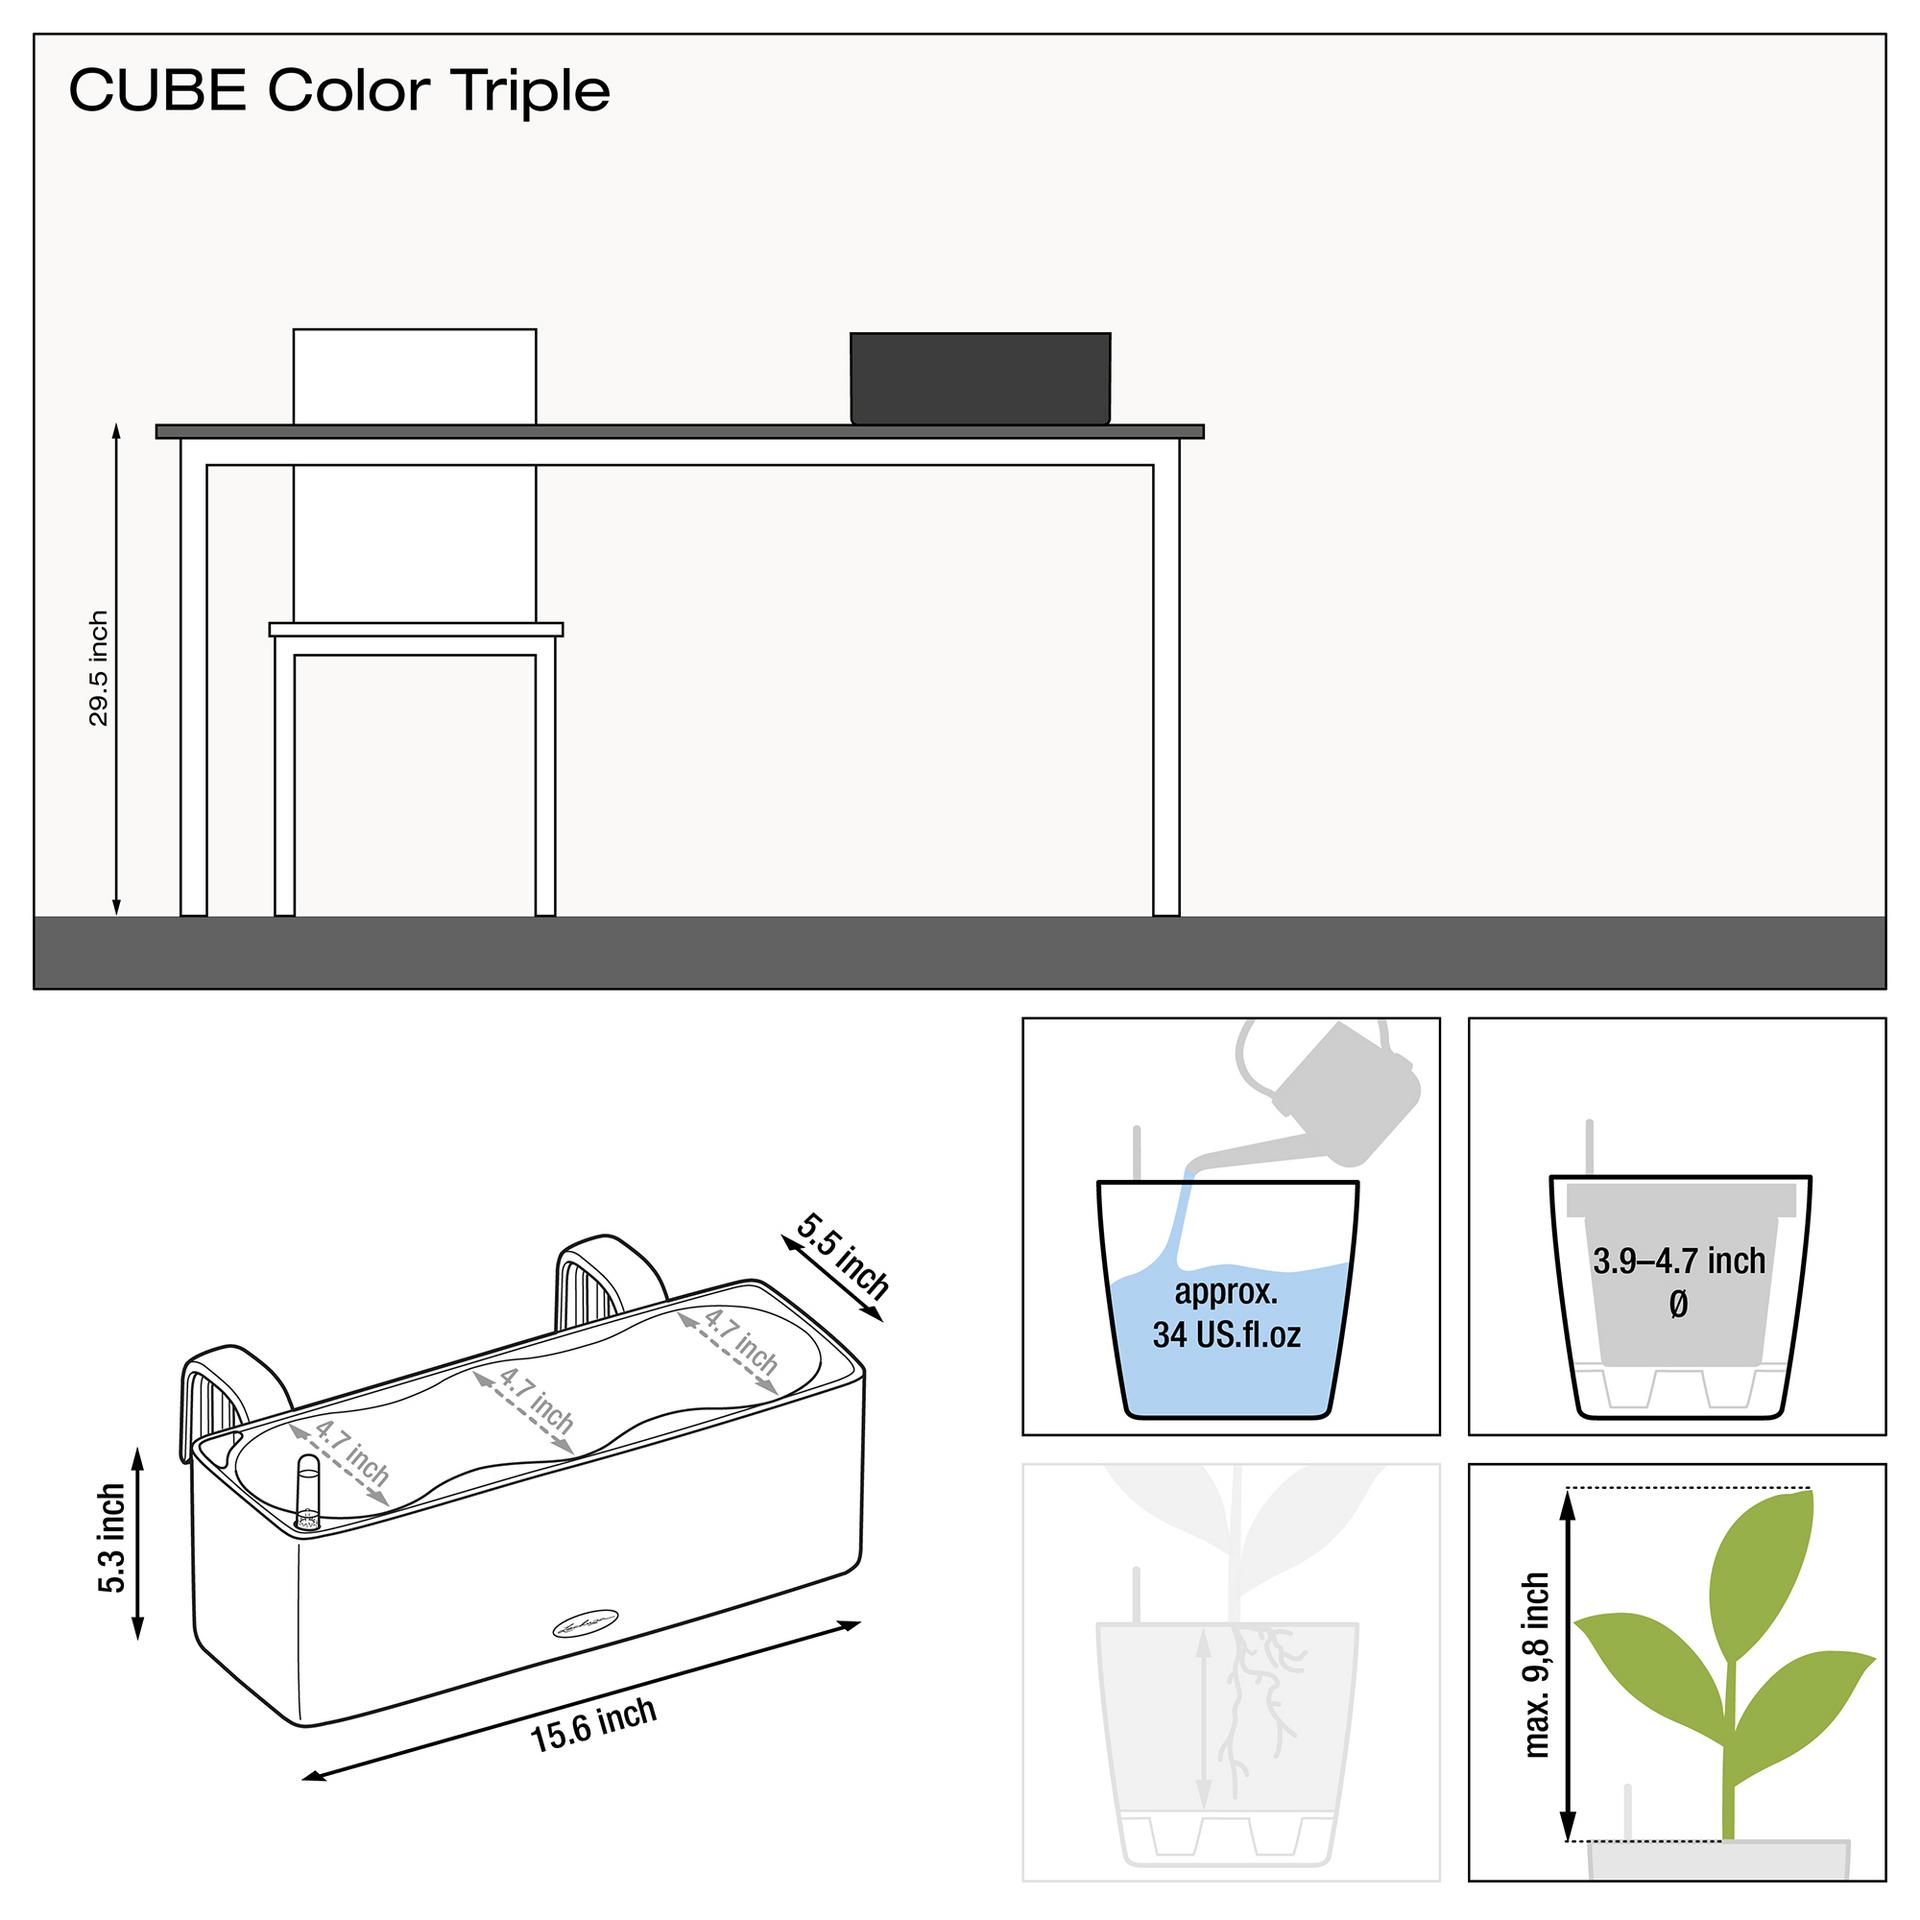 le_cube-color-triple_product_addi_nz_us